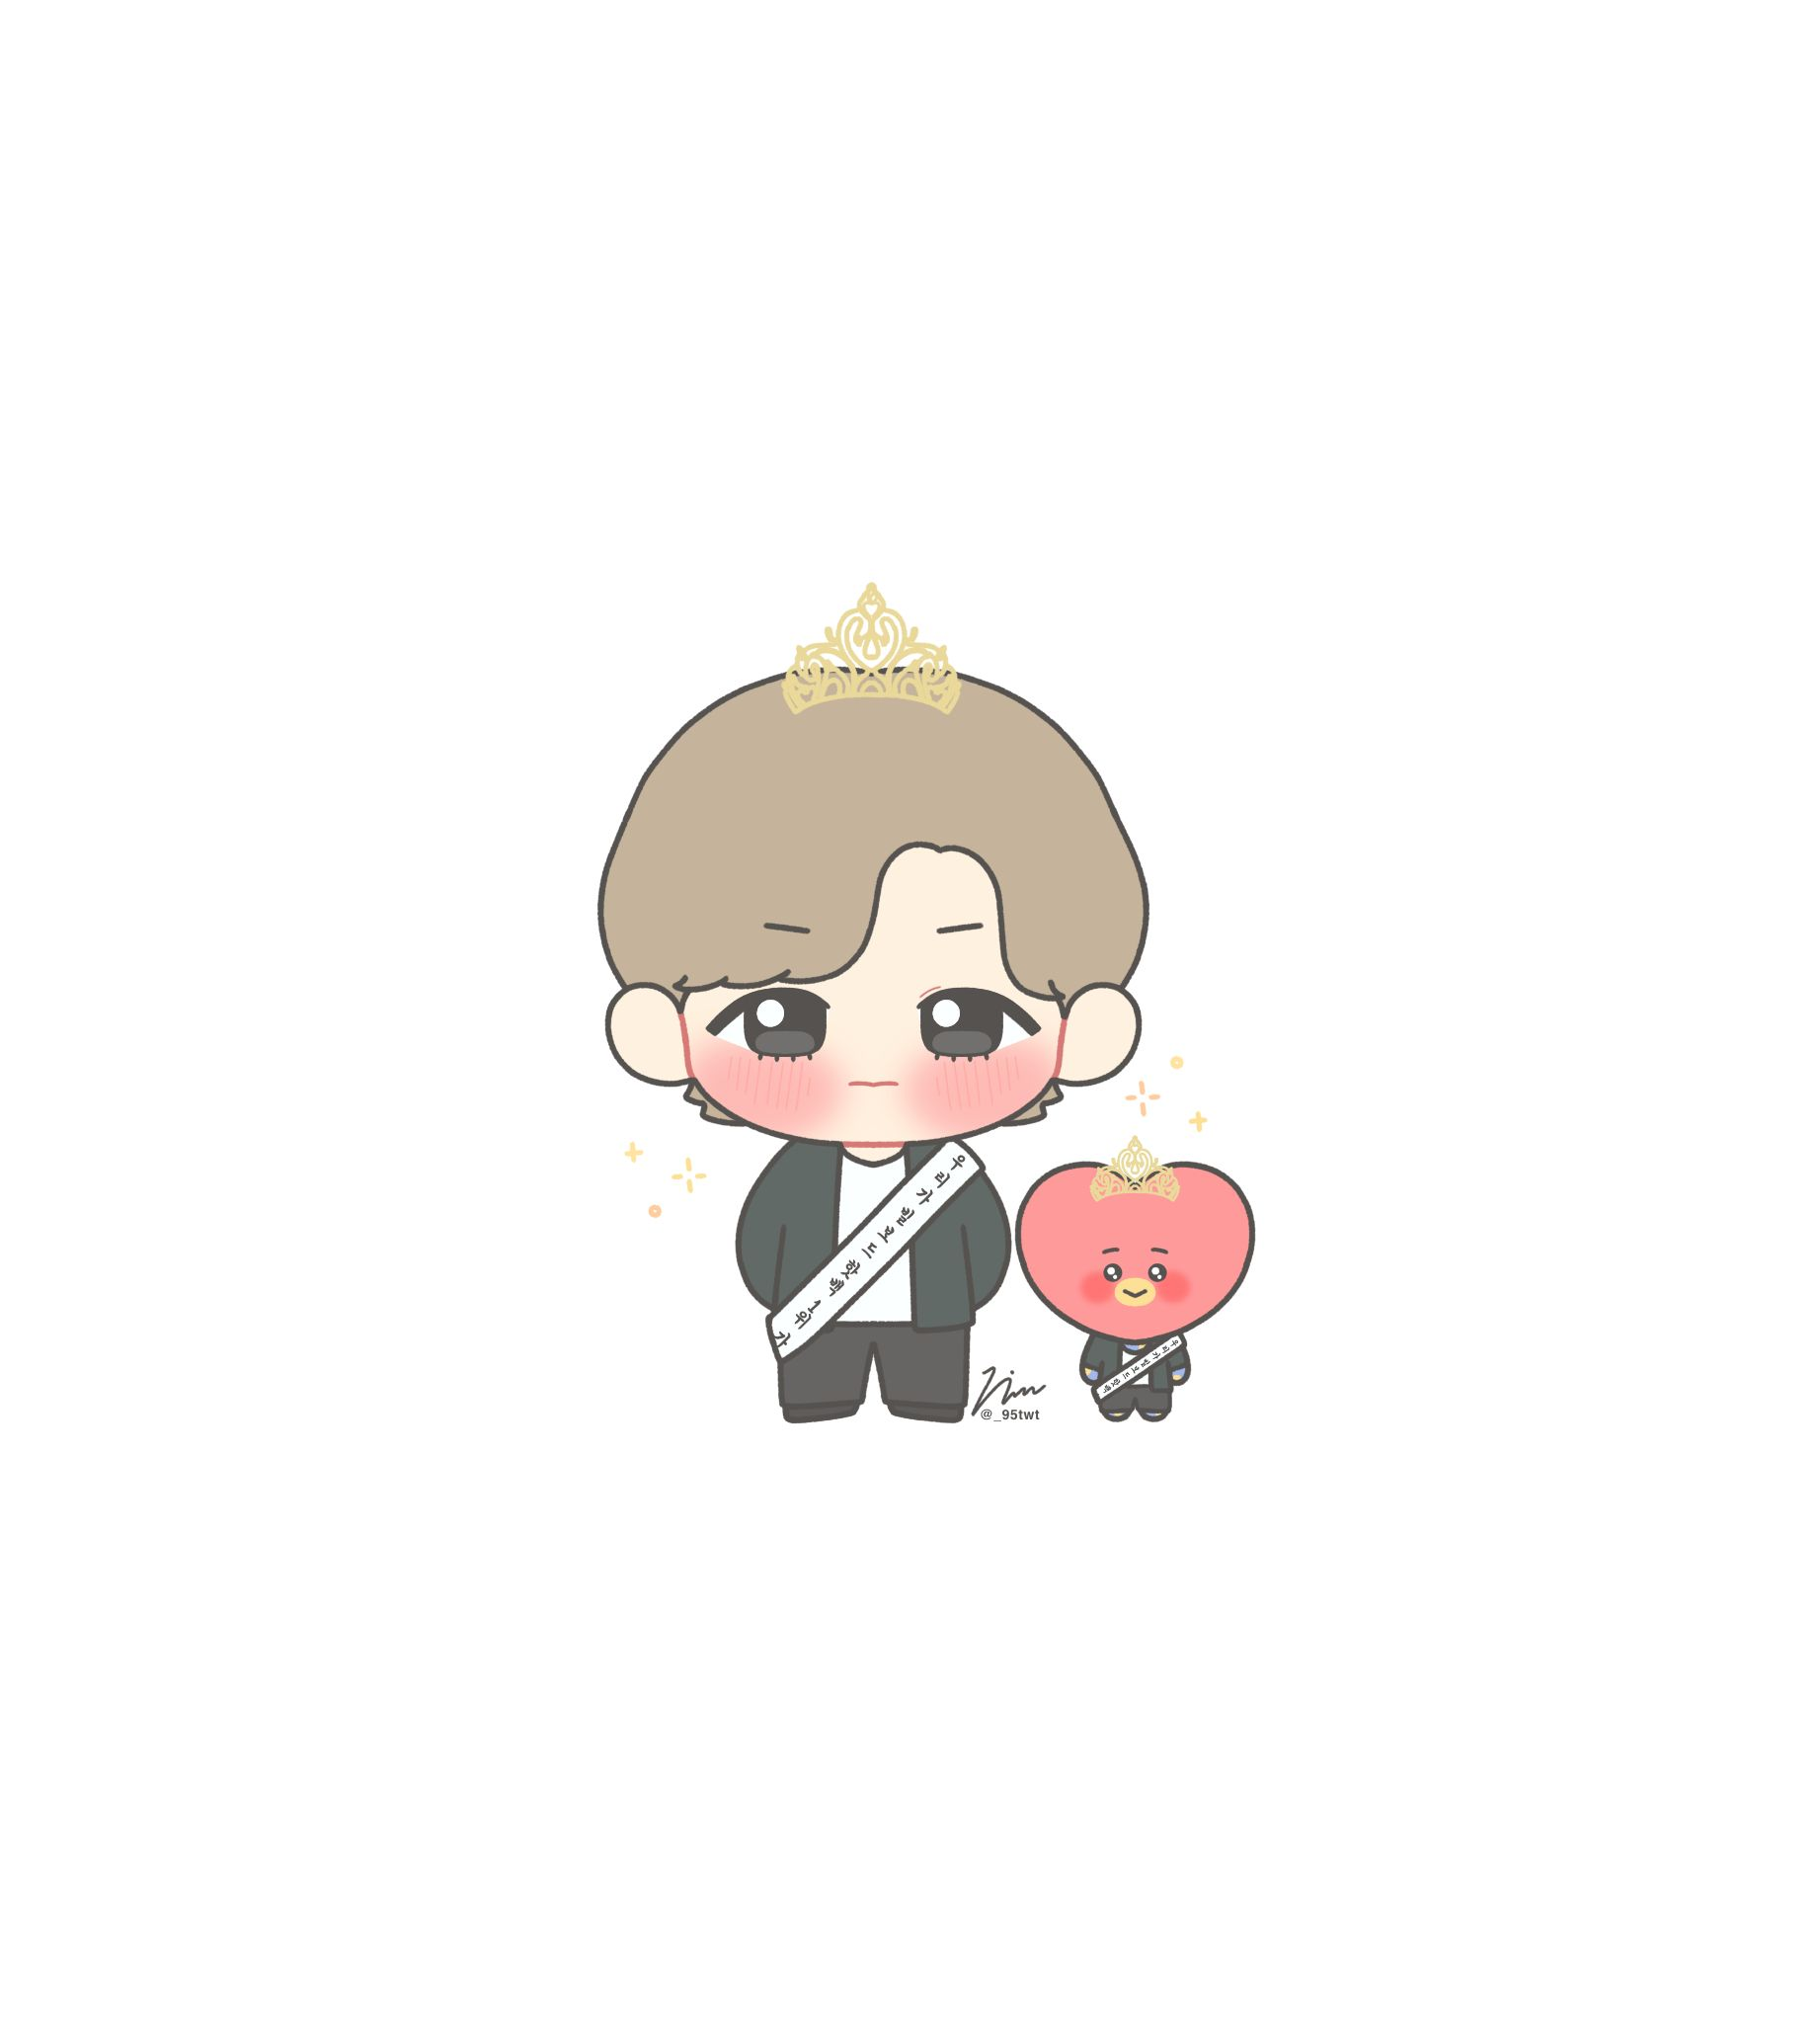 뷩 On Twitter Cute Cartoon Wallpapers Taehyung Fanart Bts Chibi